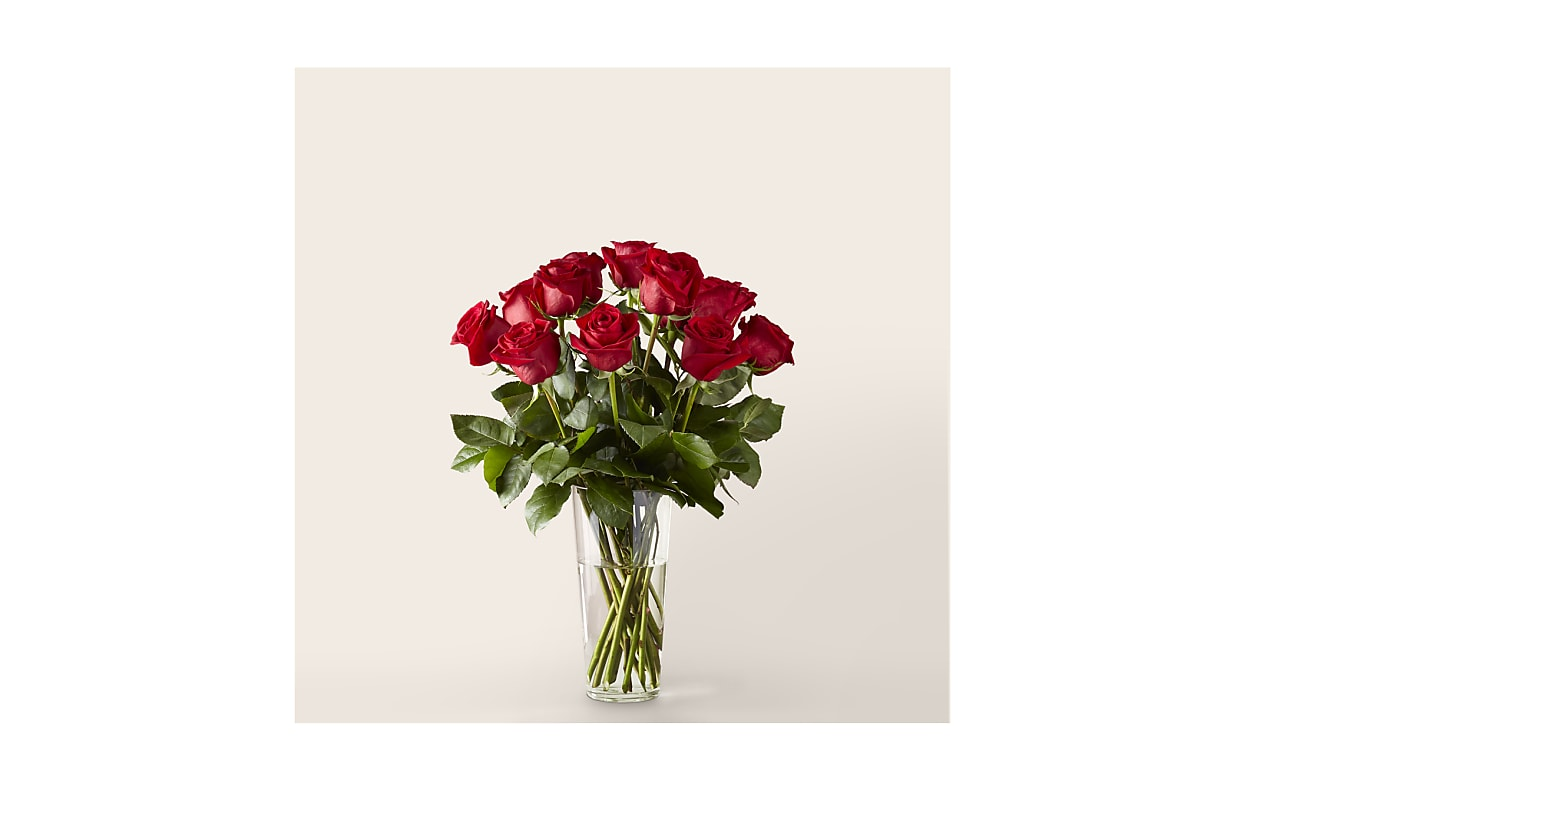 Long Stem Red Rose Bouquet – 12 Red Roses - Image 1 Of 2